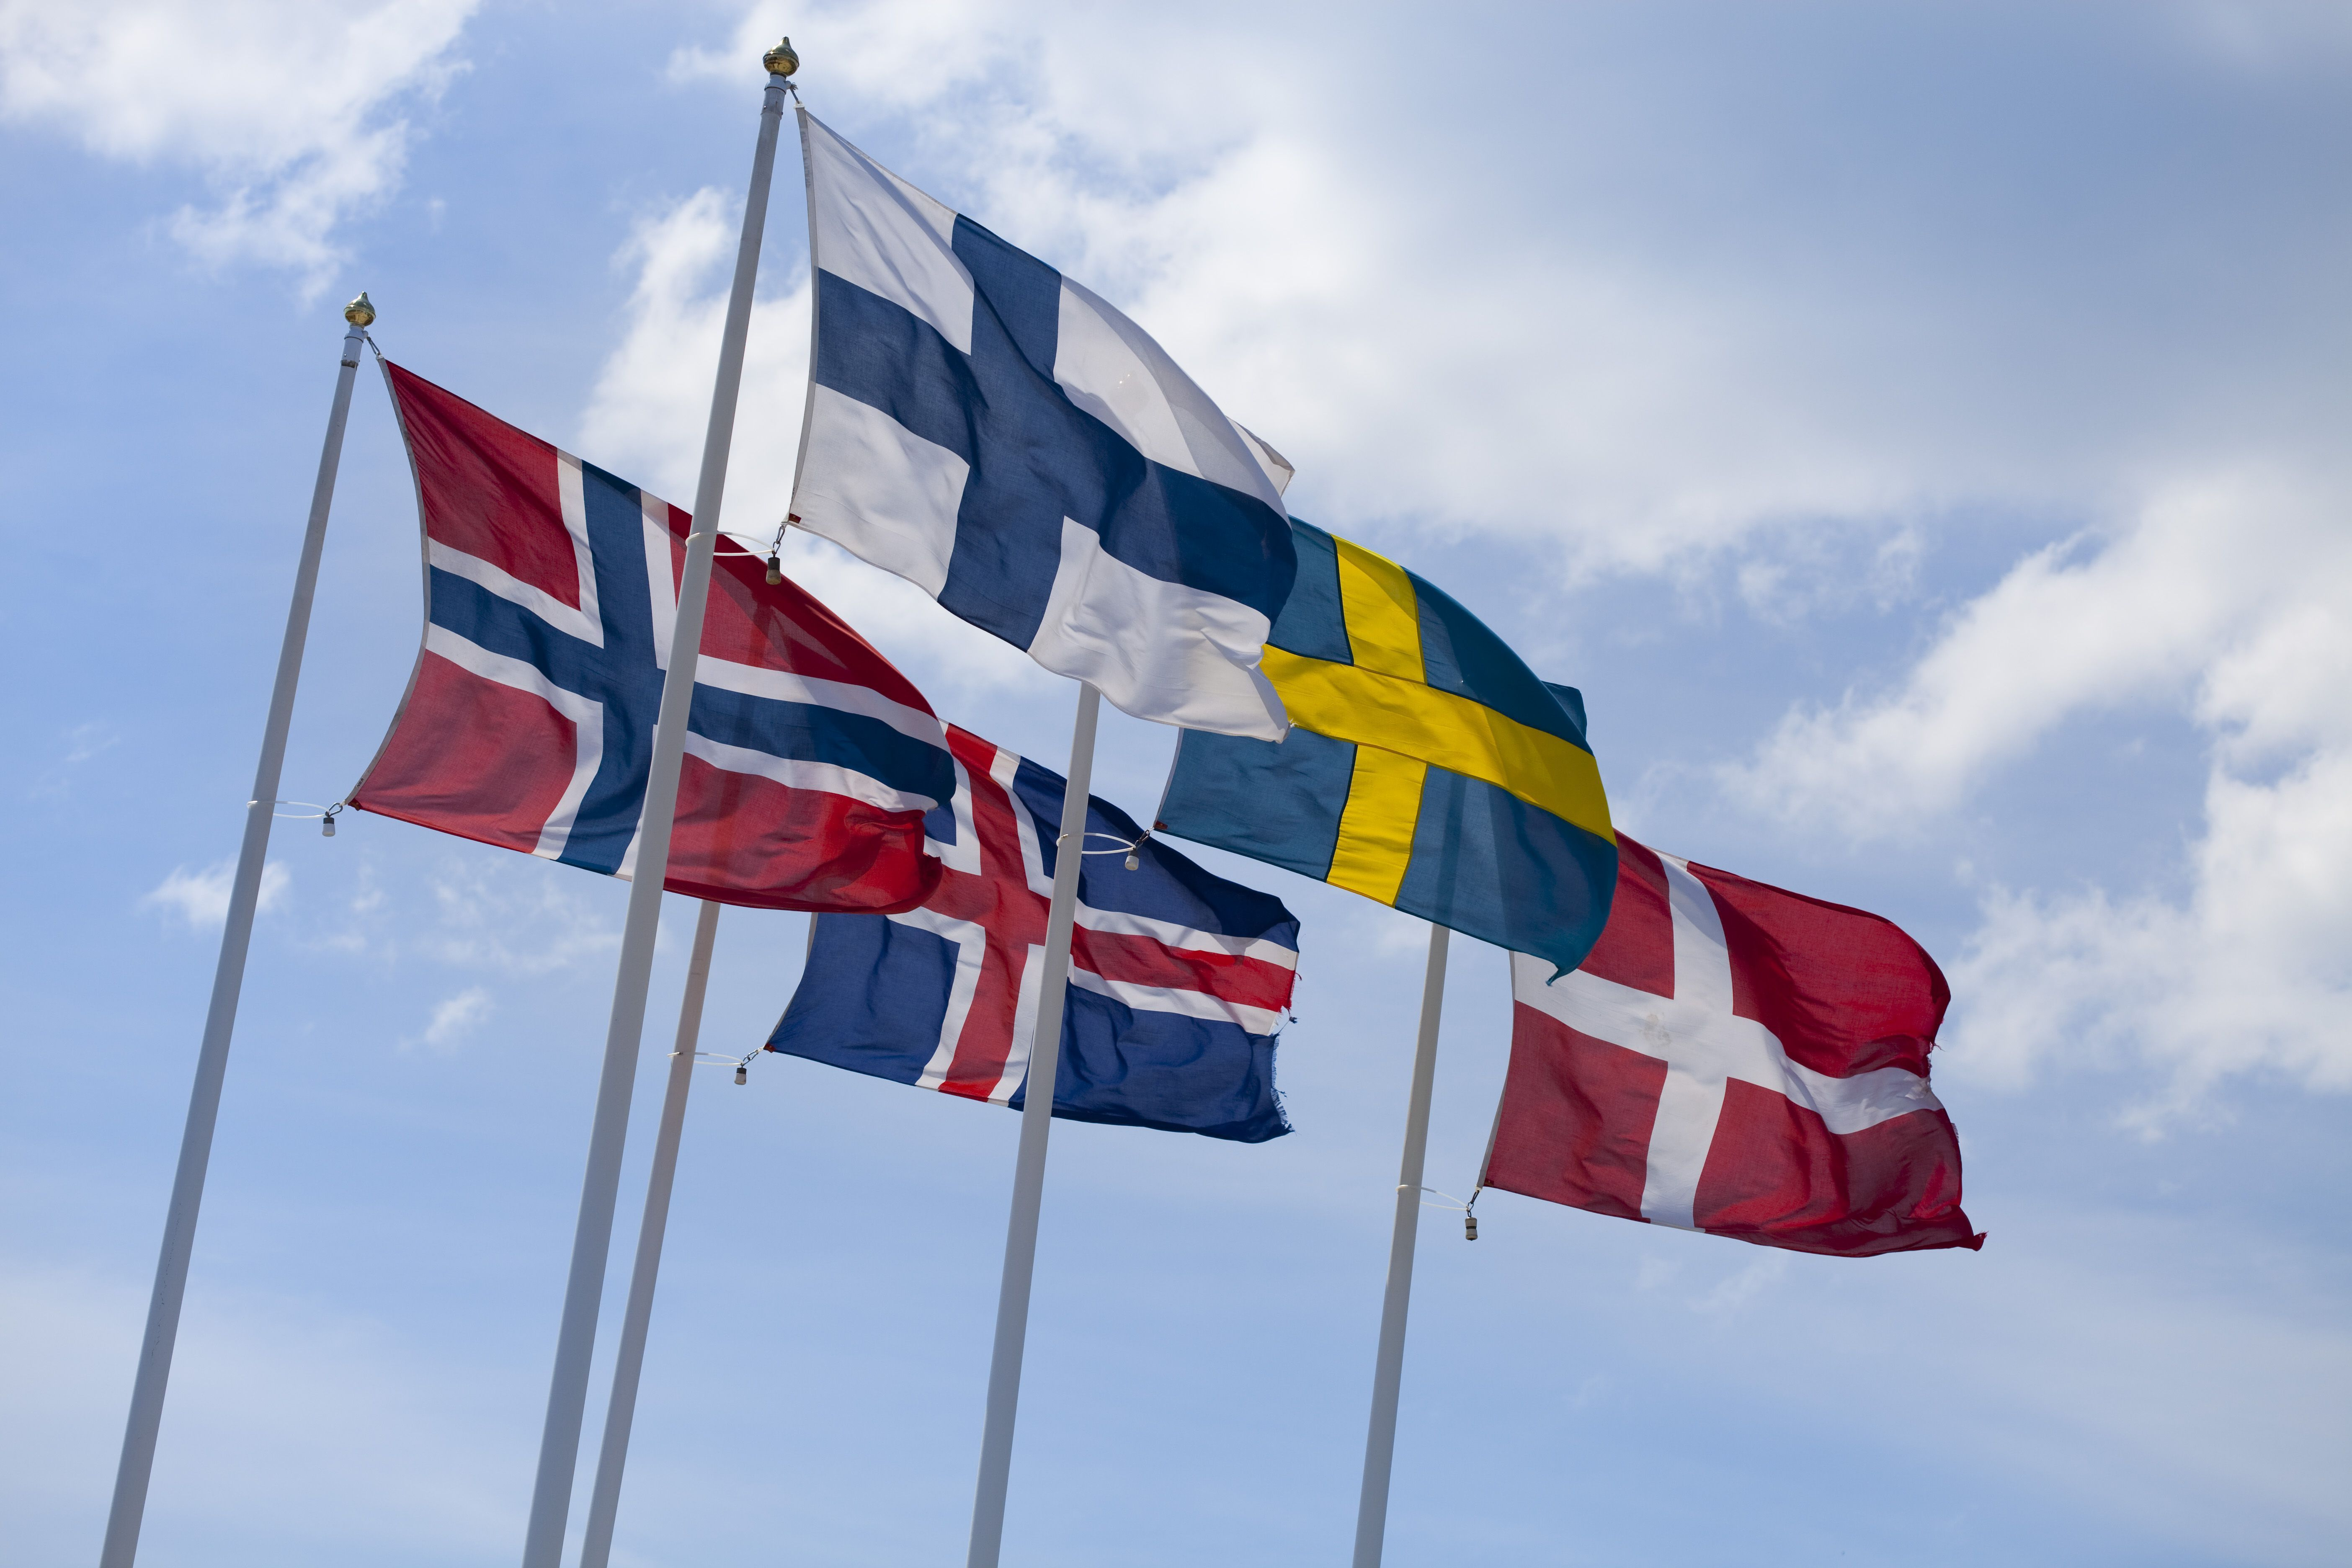 Learn To Recognize The Scandinavian Flags In 2020 Scandinavian History Scandinavia Scandinavian Countries